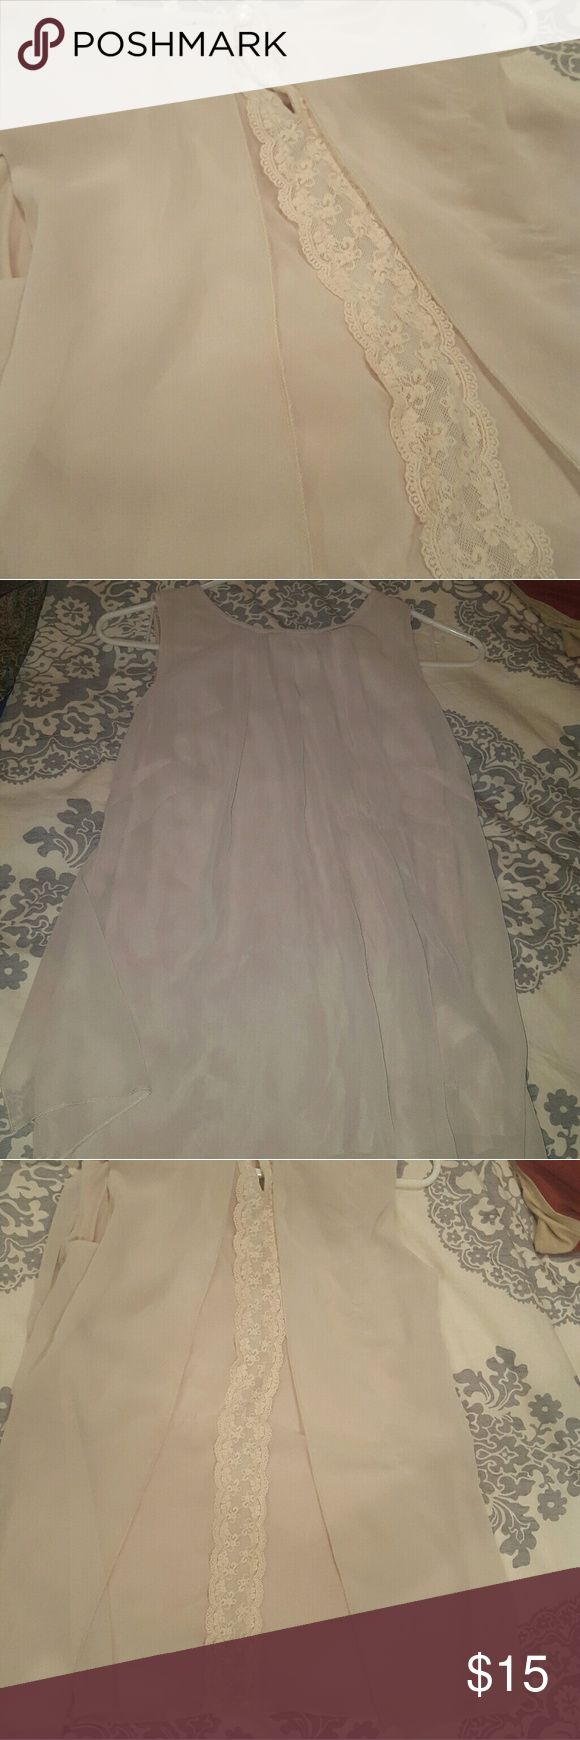 Beautiful peah silky top w/ back lace detail Sleeveless flowy peach top with back that has lace detail, as pictured. Very feminine and would be great for work or wearing out spring summer and fall. Yest Tops Blouses